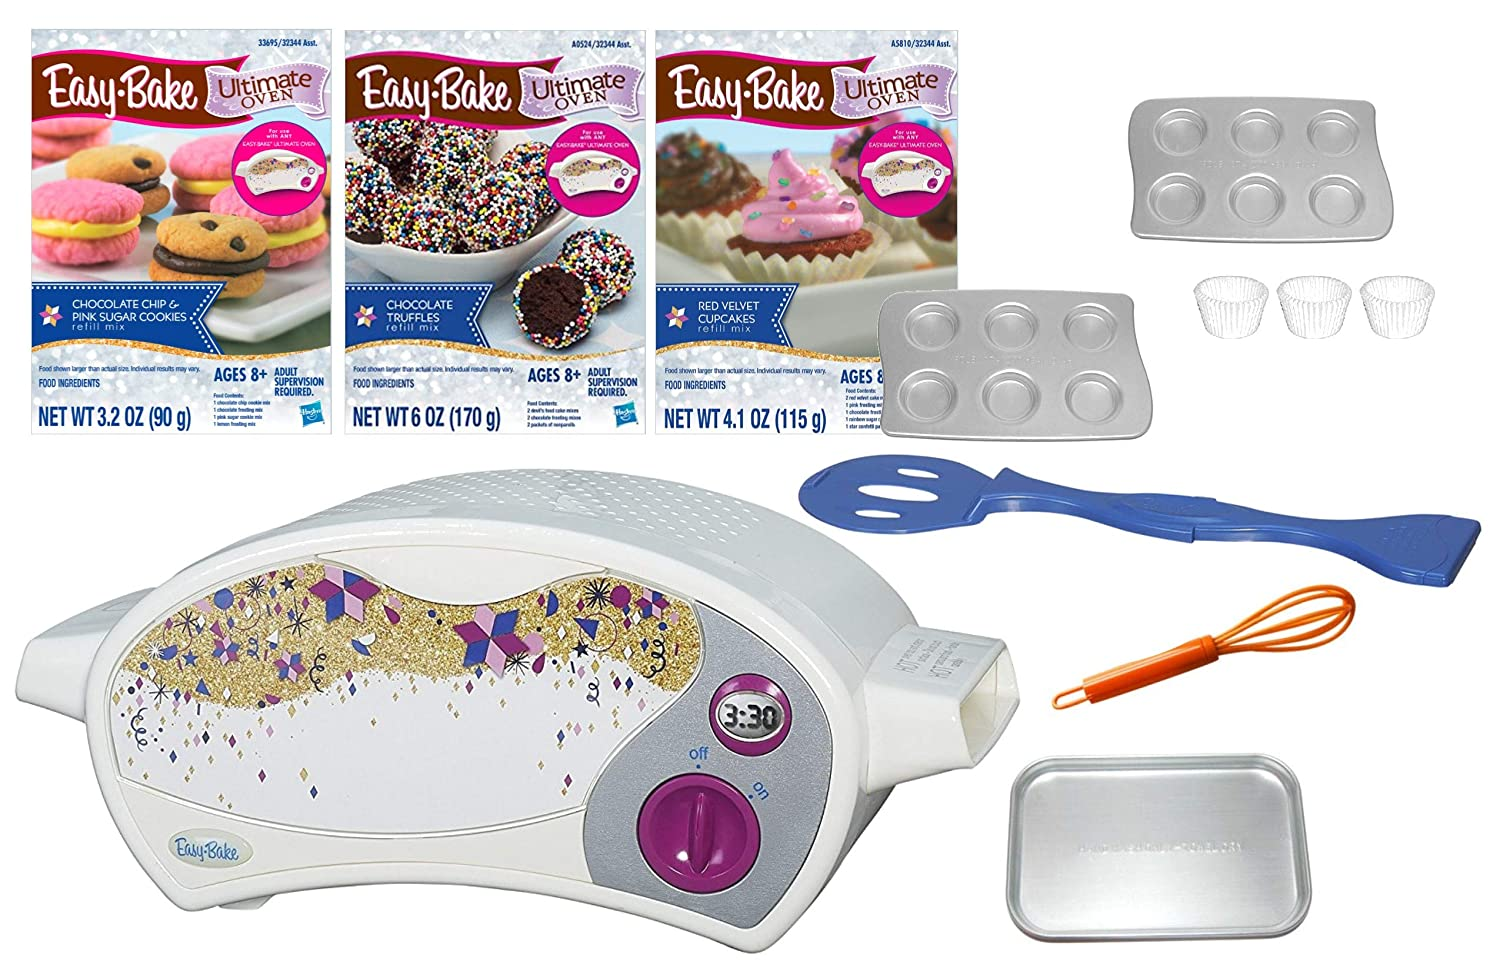 Ultimate Easy Bake Bundle - 1 Baking Star Edition Ultimate Oven , 1 Chocolate Chip & Pink Sugar Cookie Mix,1 Chocolate Truffle Mix, 1 Red Velvet Cupcake Mix + Extra pan, Mini Whisk - 10 Items